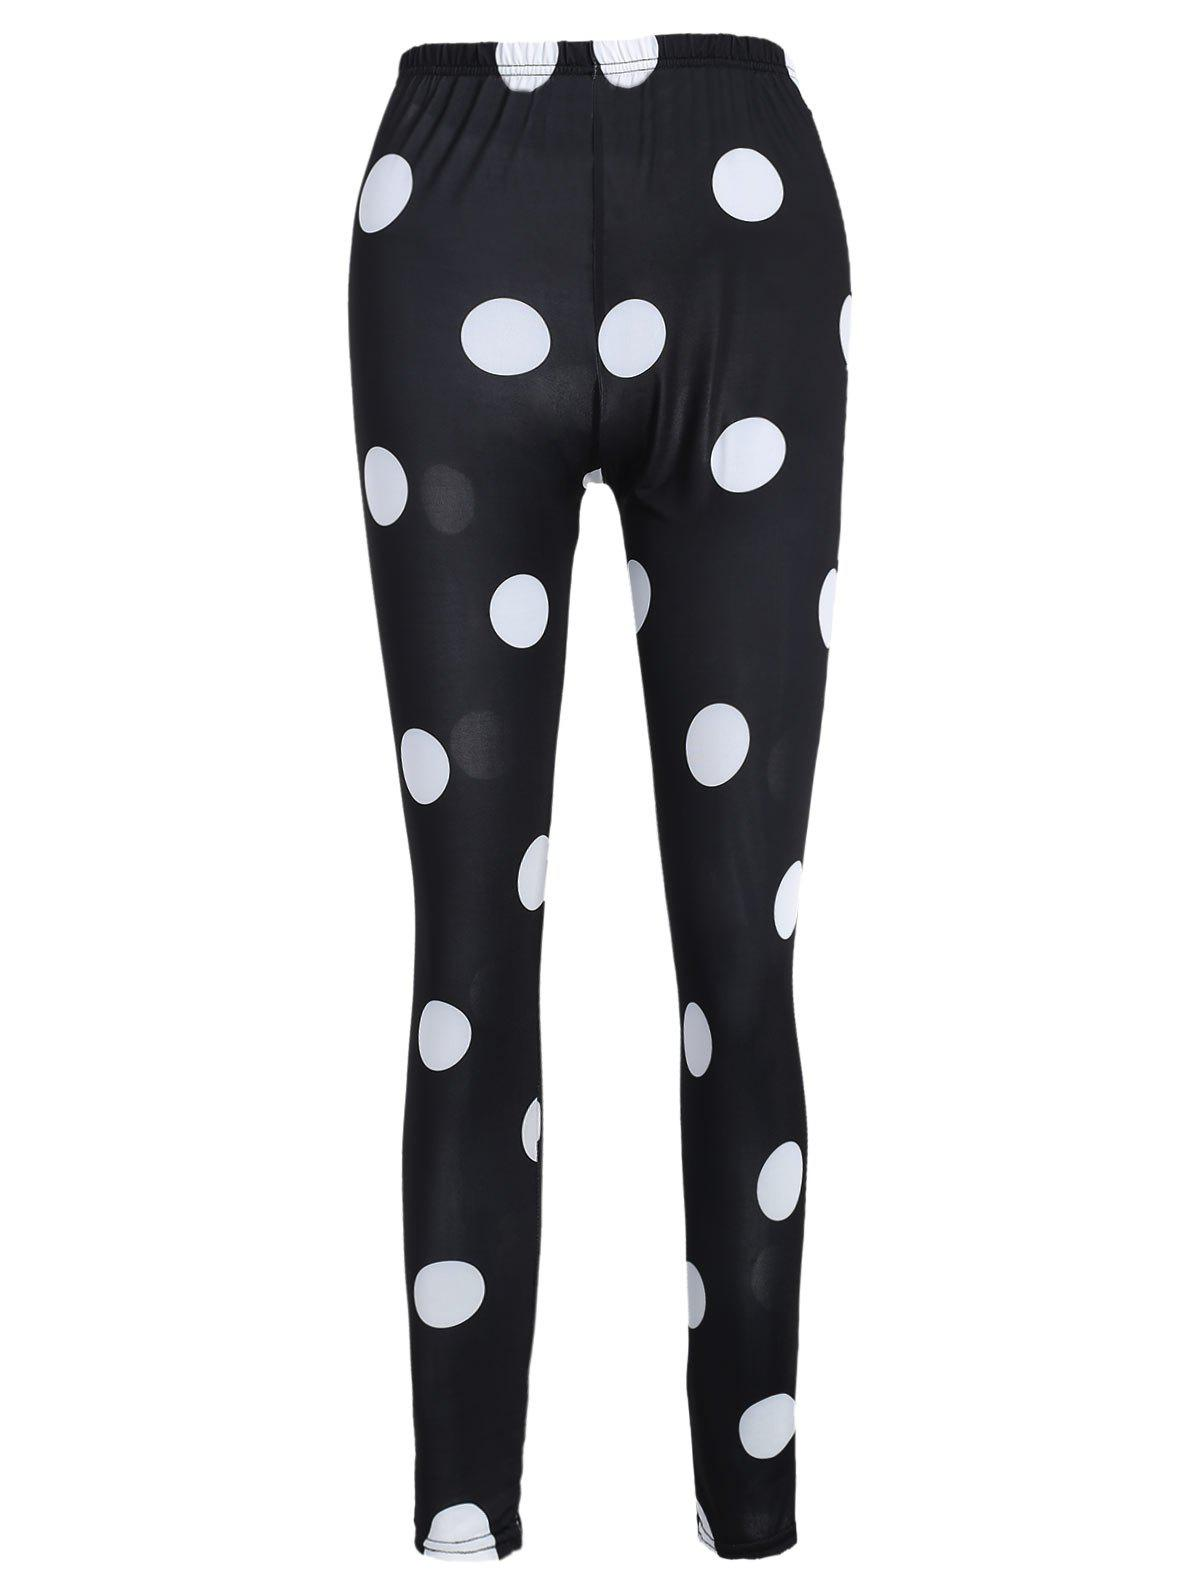 Discount Polka Dot Print Leggings